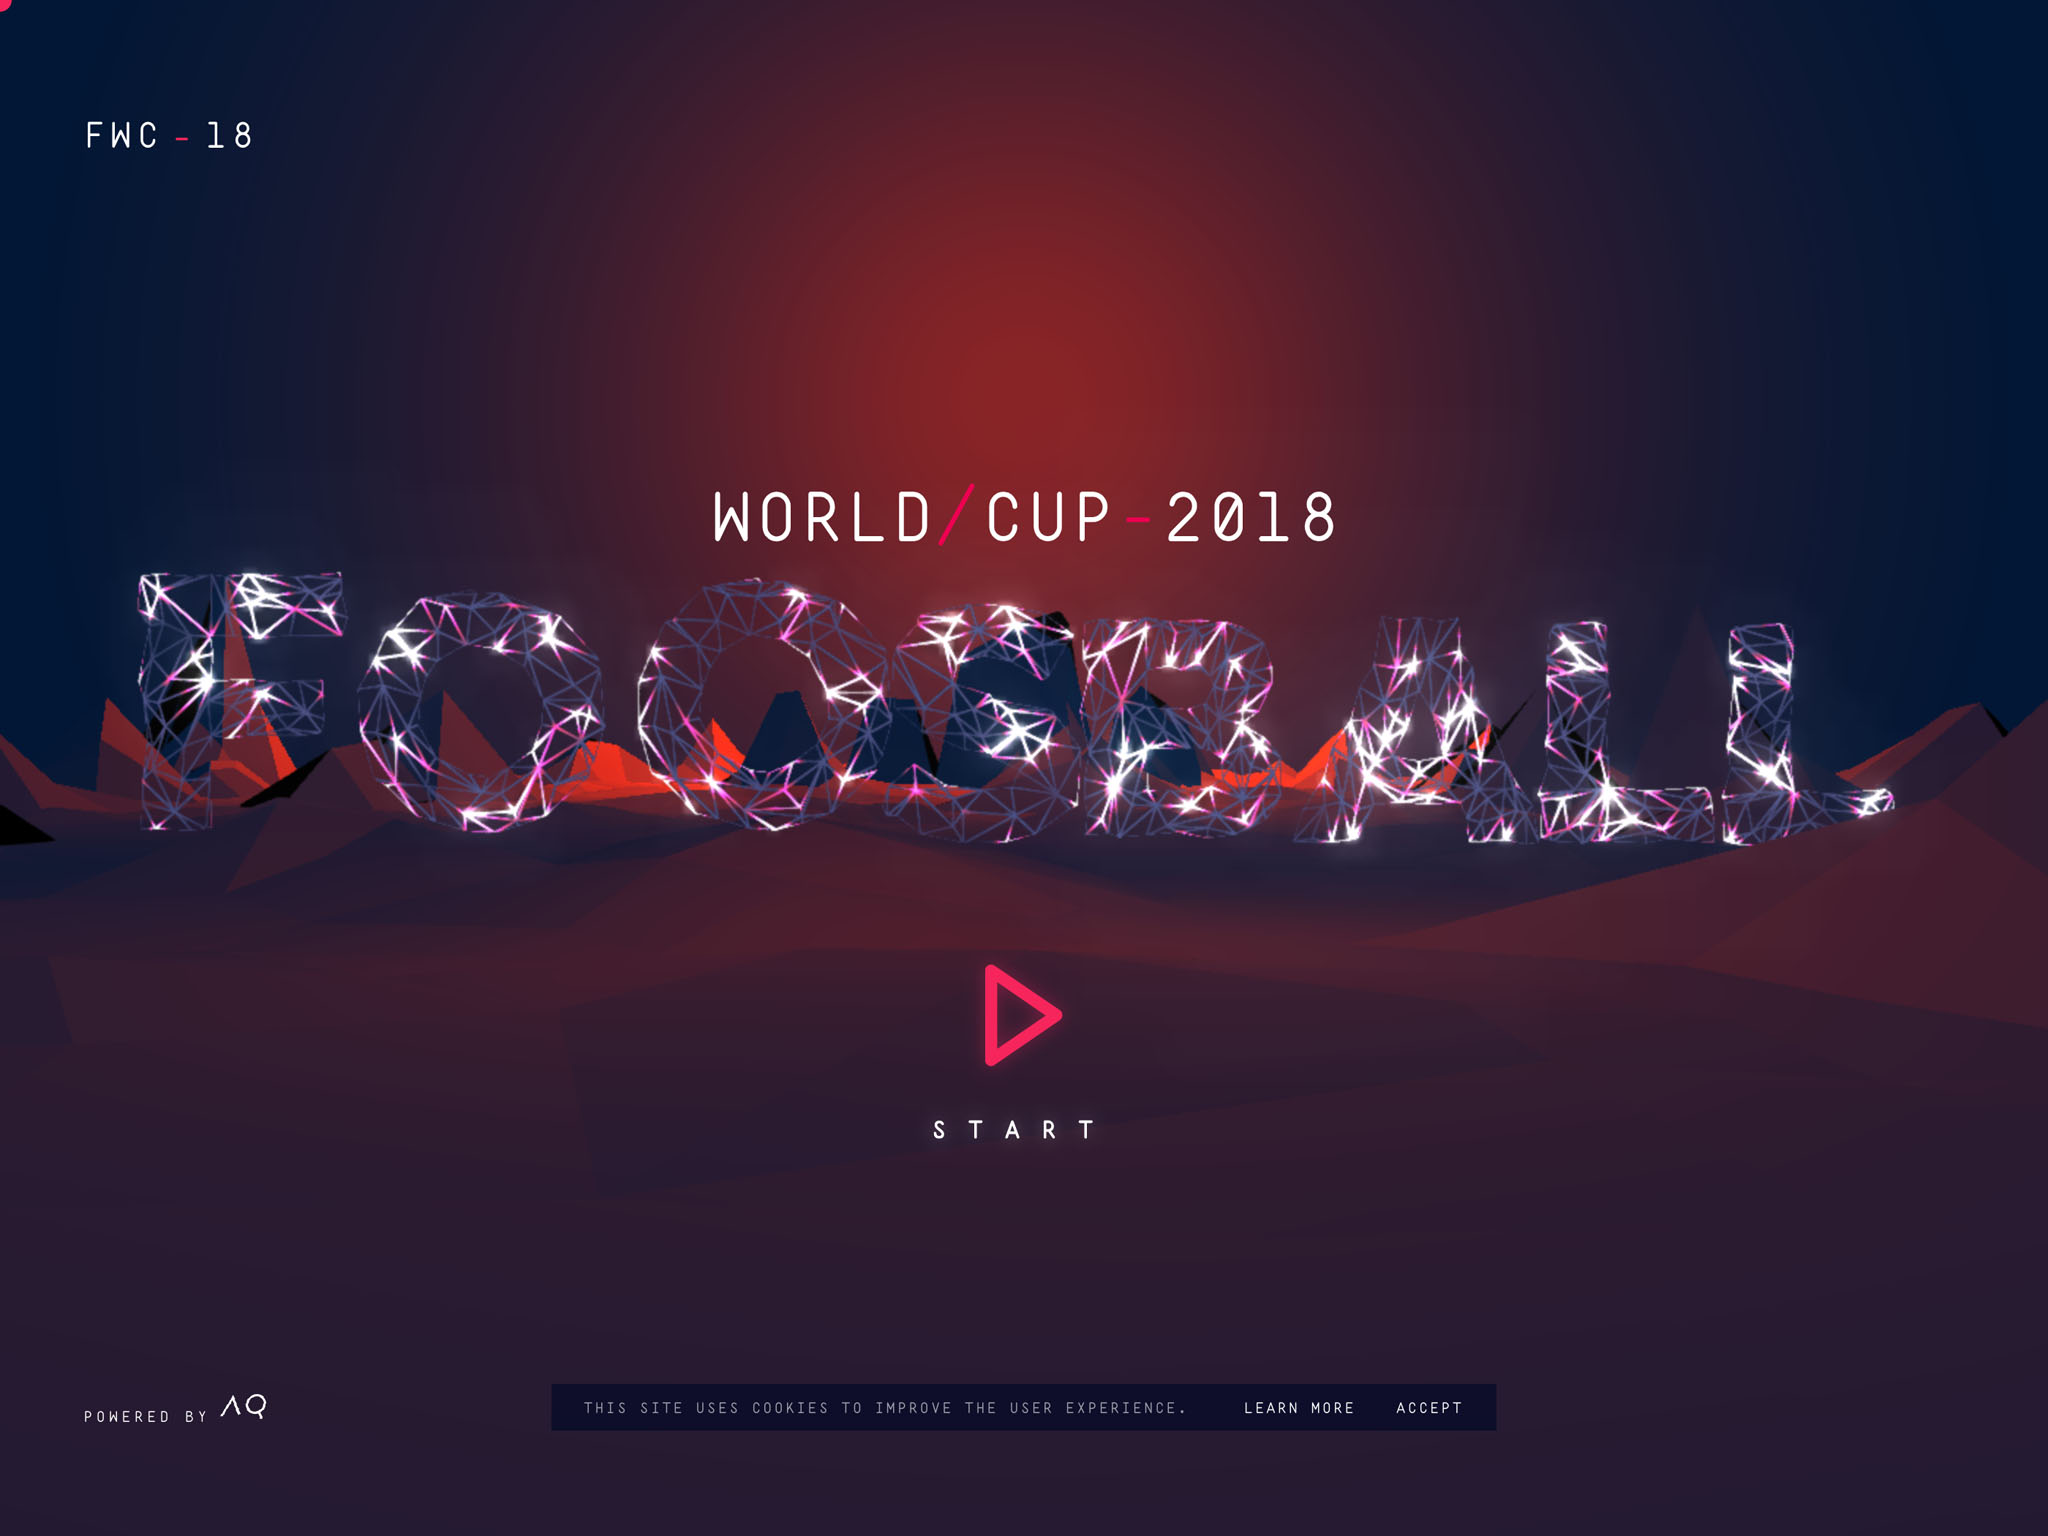 2018 Foosball World Cup